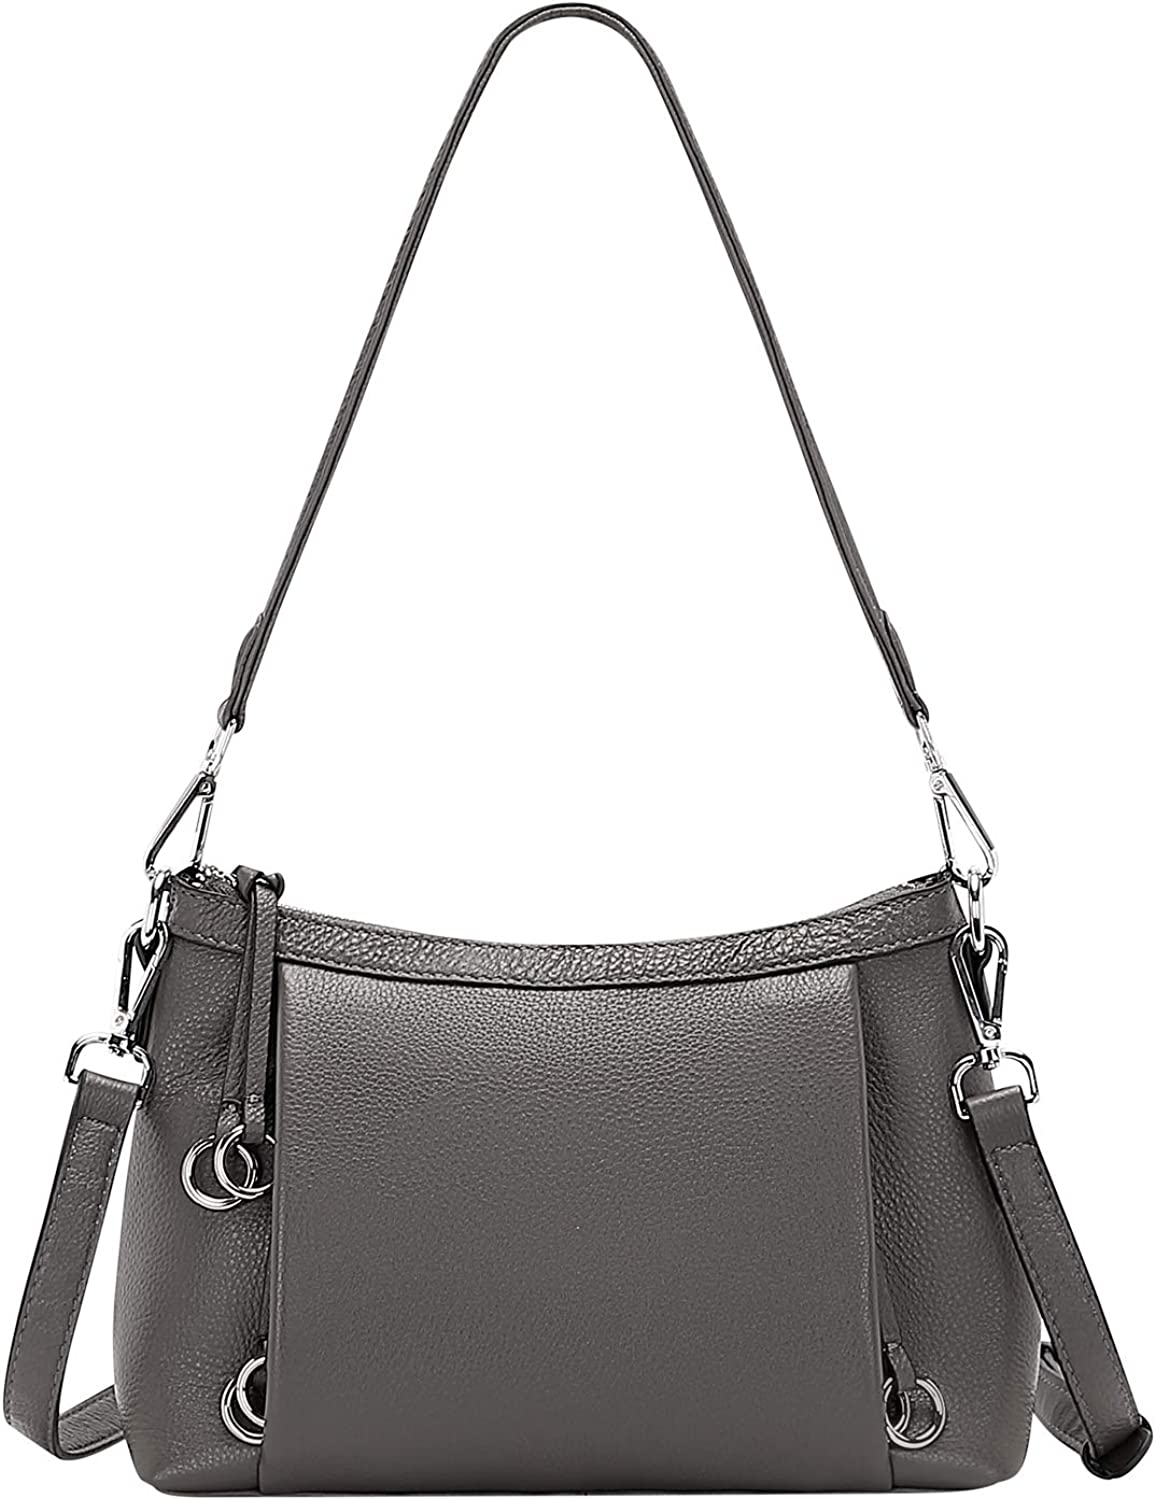 OVER EARTH Crossbody Purses and Handbags Industry No. 1 Leath Genuine for Limited time trial price Women